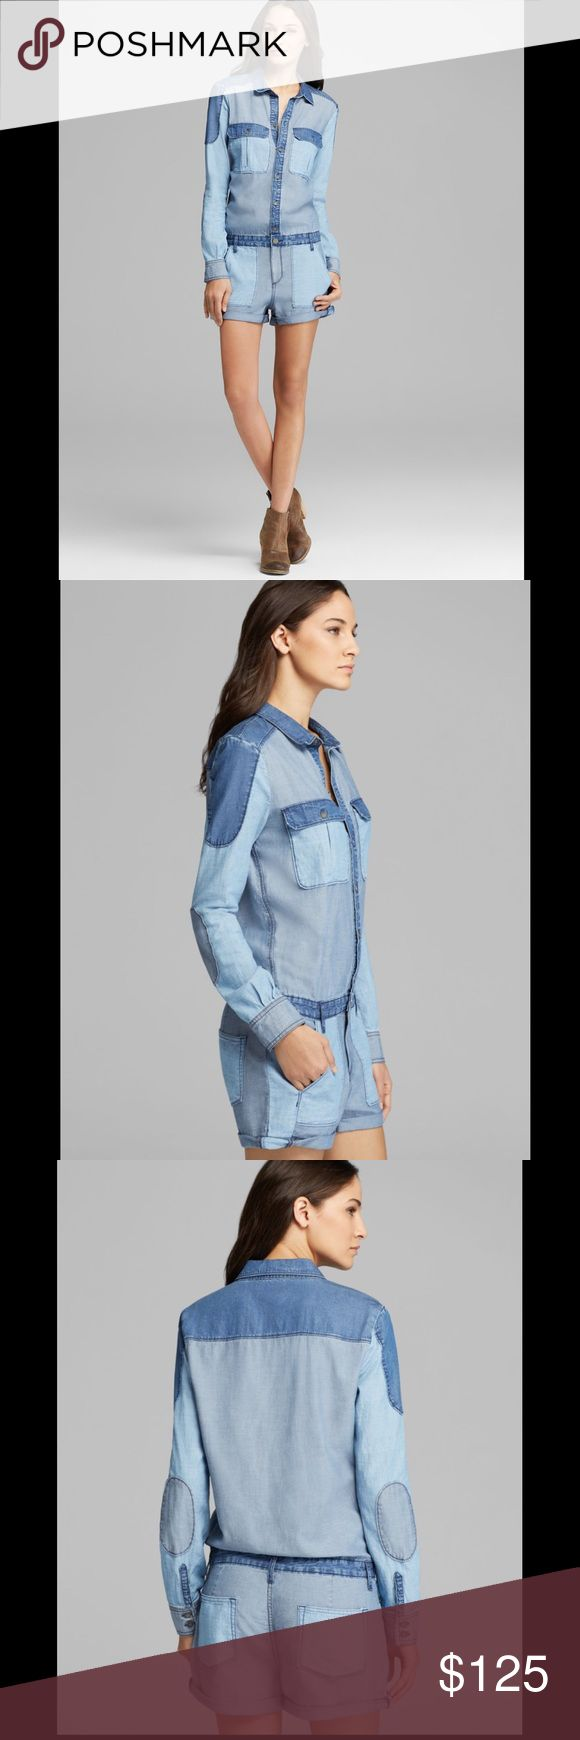 PAIGE Denim Jackson Colorblock Jeans Romper M This is an adorable Paige denim colorblock romper. Worn once and in perfect condition. Size Medium- No trades please  Paige Jeans Other